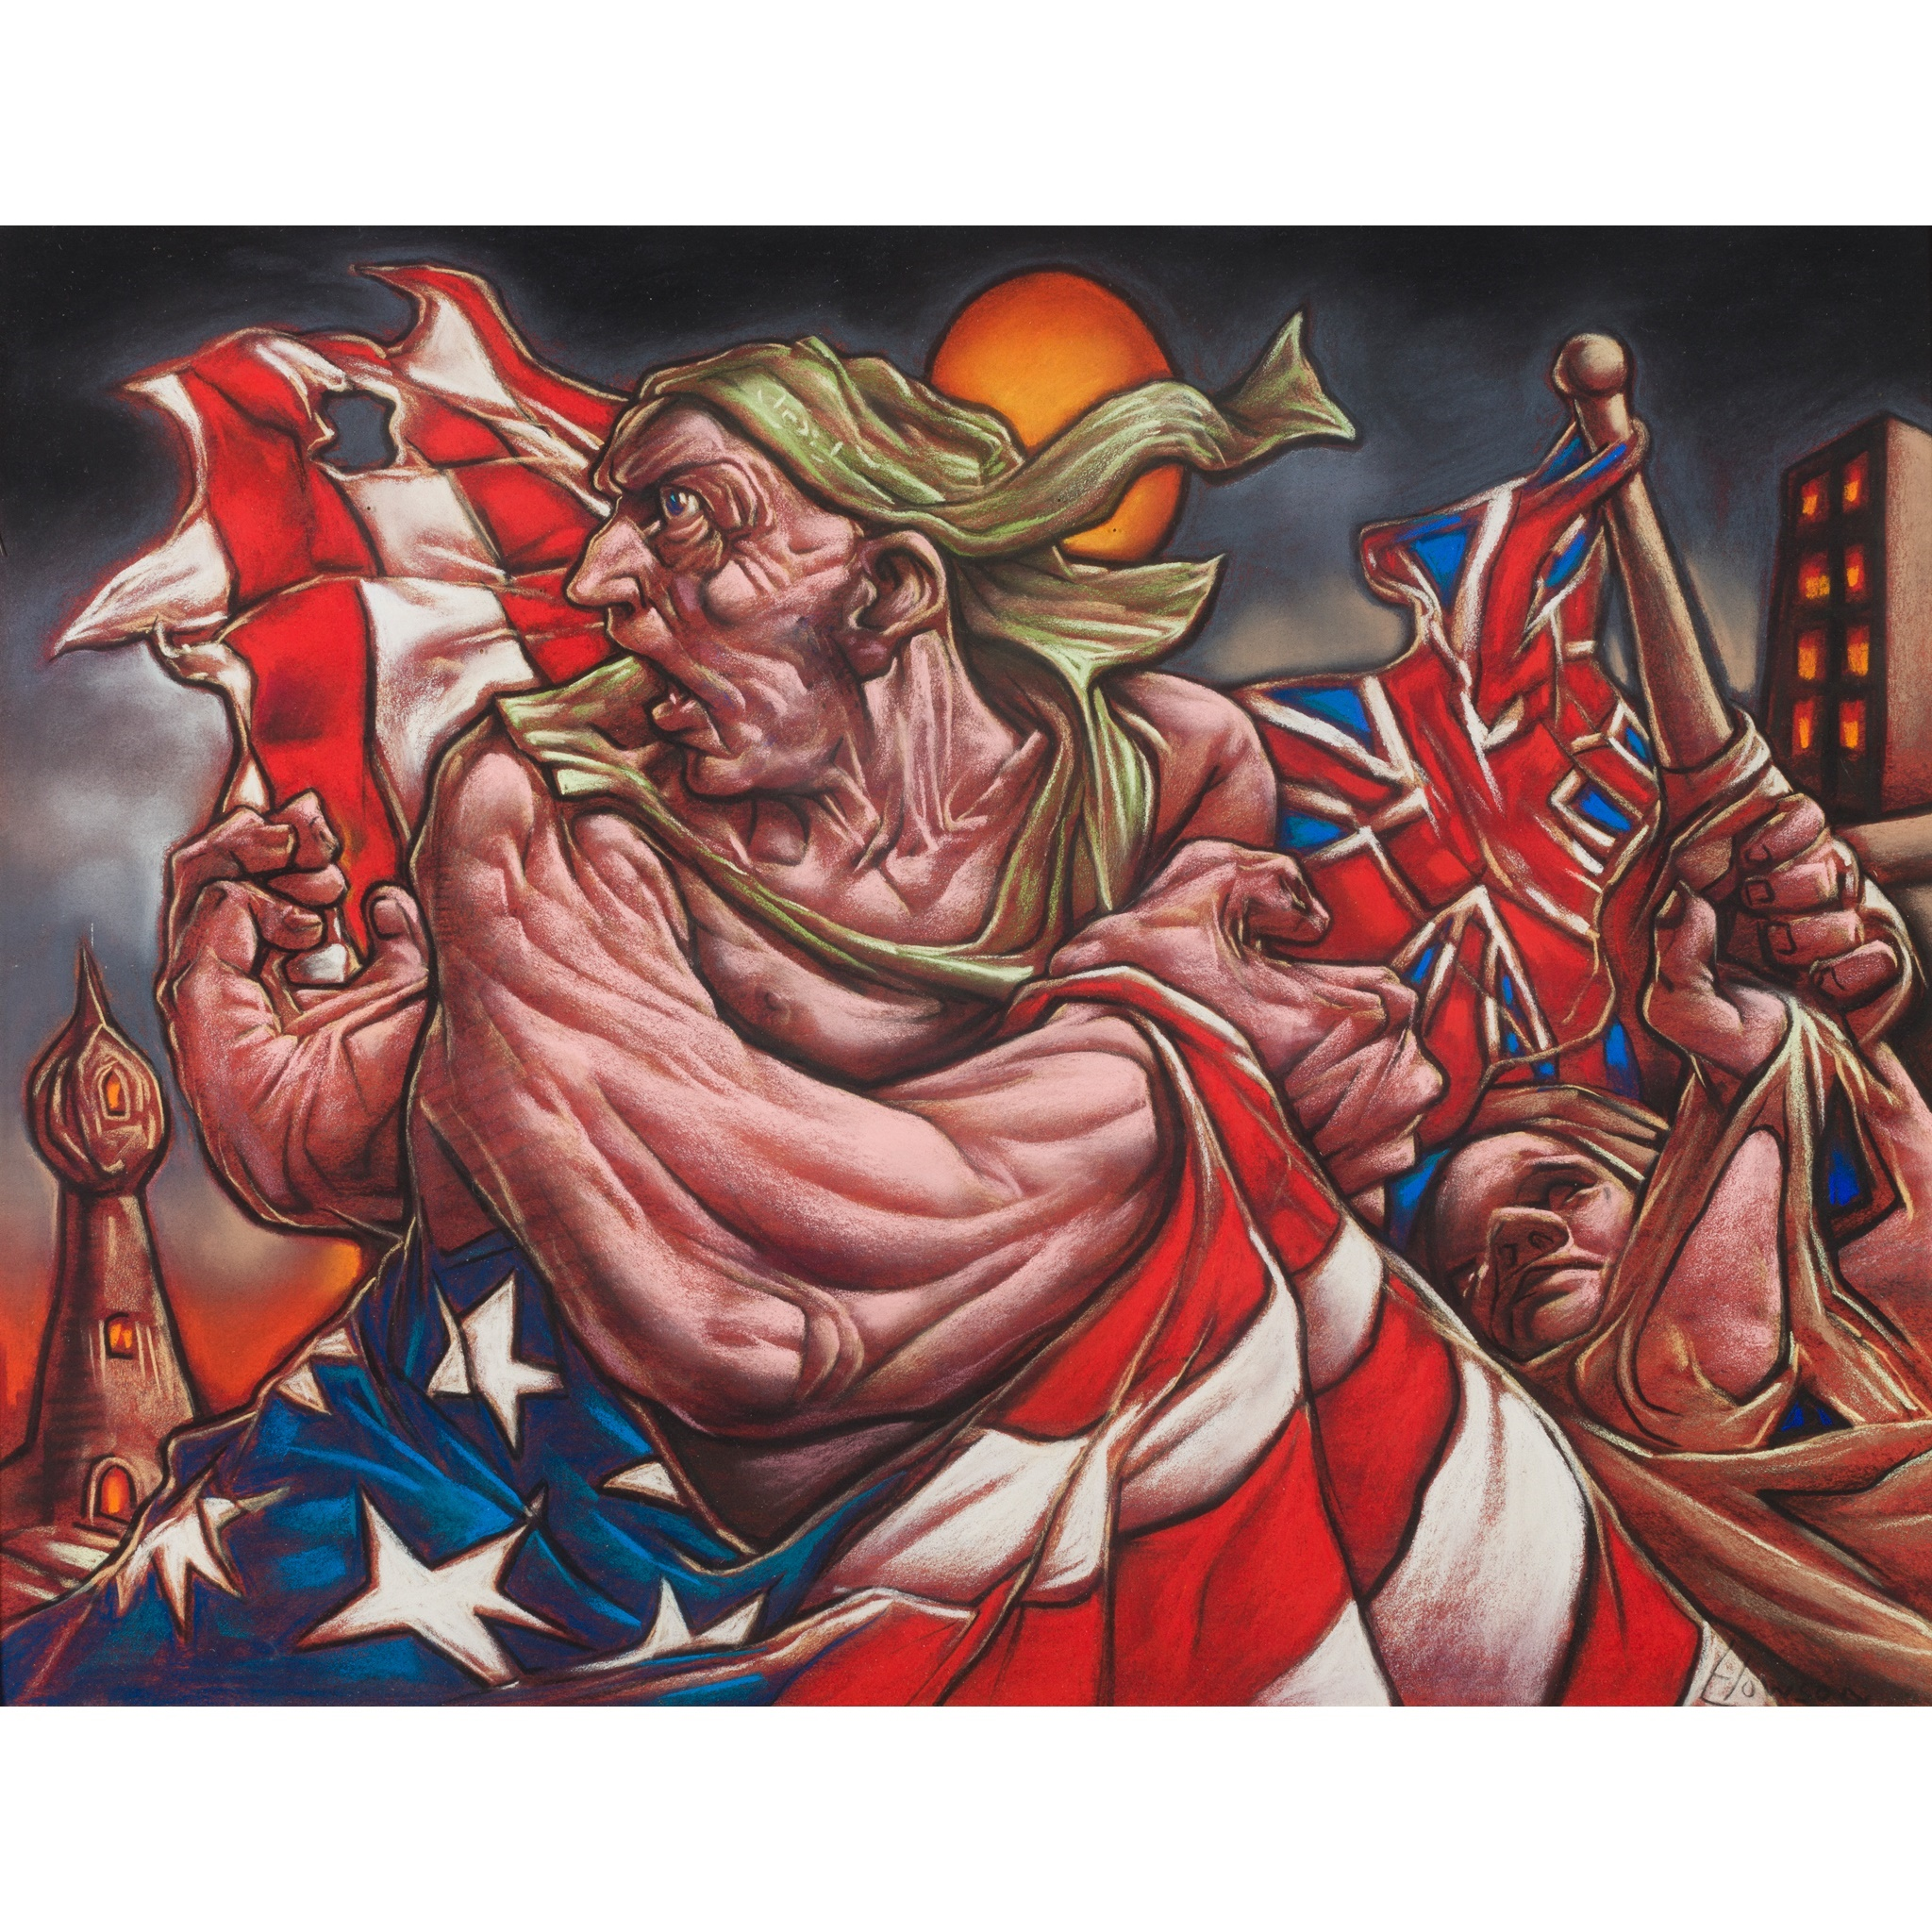 LOT 62 | § PETER HOWSON O.B.E. (SCOTTISH B.1958) | SPECIAL RELATIONS Signed, pastel | 48cm x 61cm (18in x 24in) | Provenance: Peter Howson Studio | £2,000 - £3,000 + fees